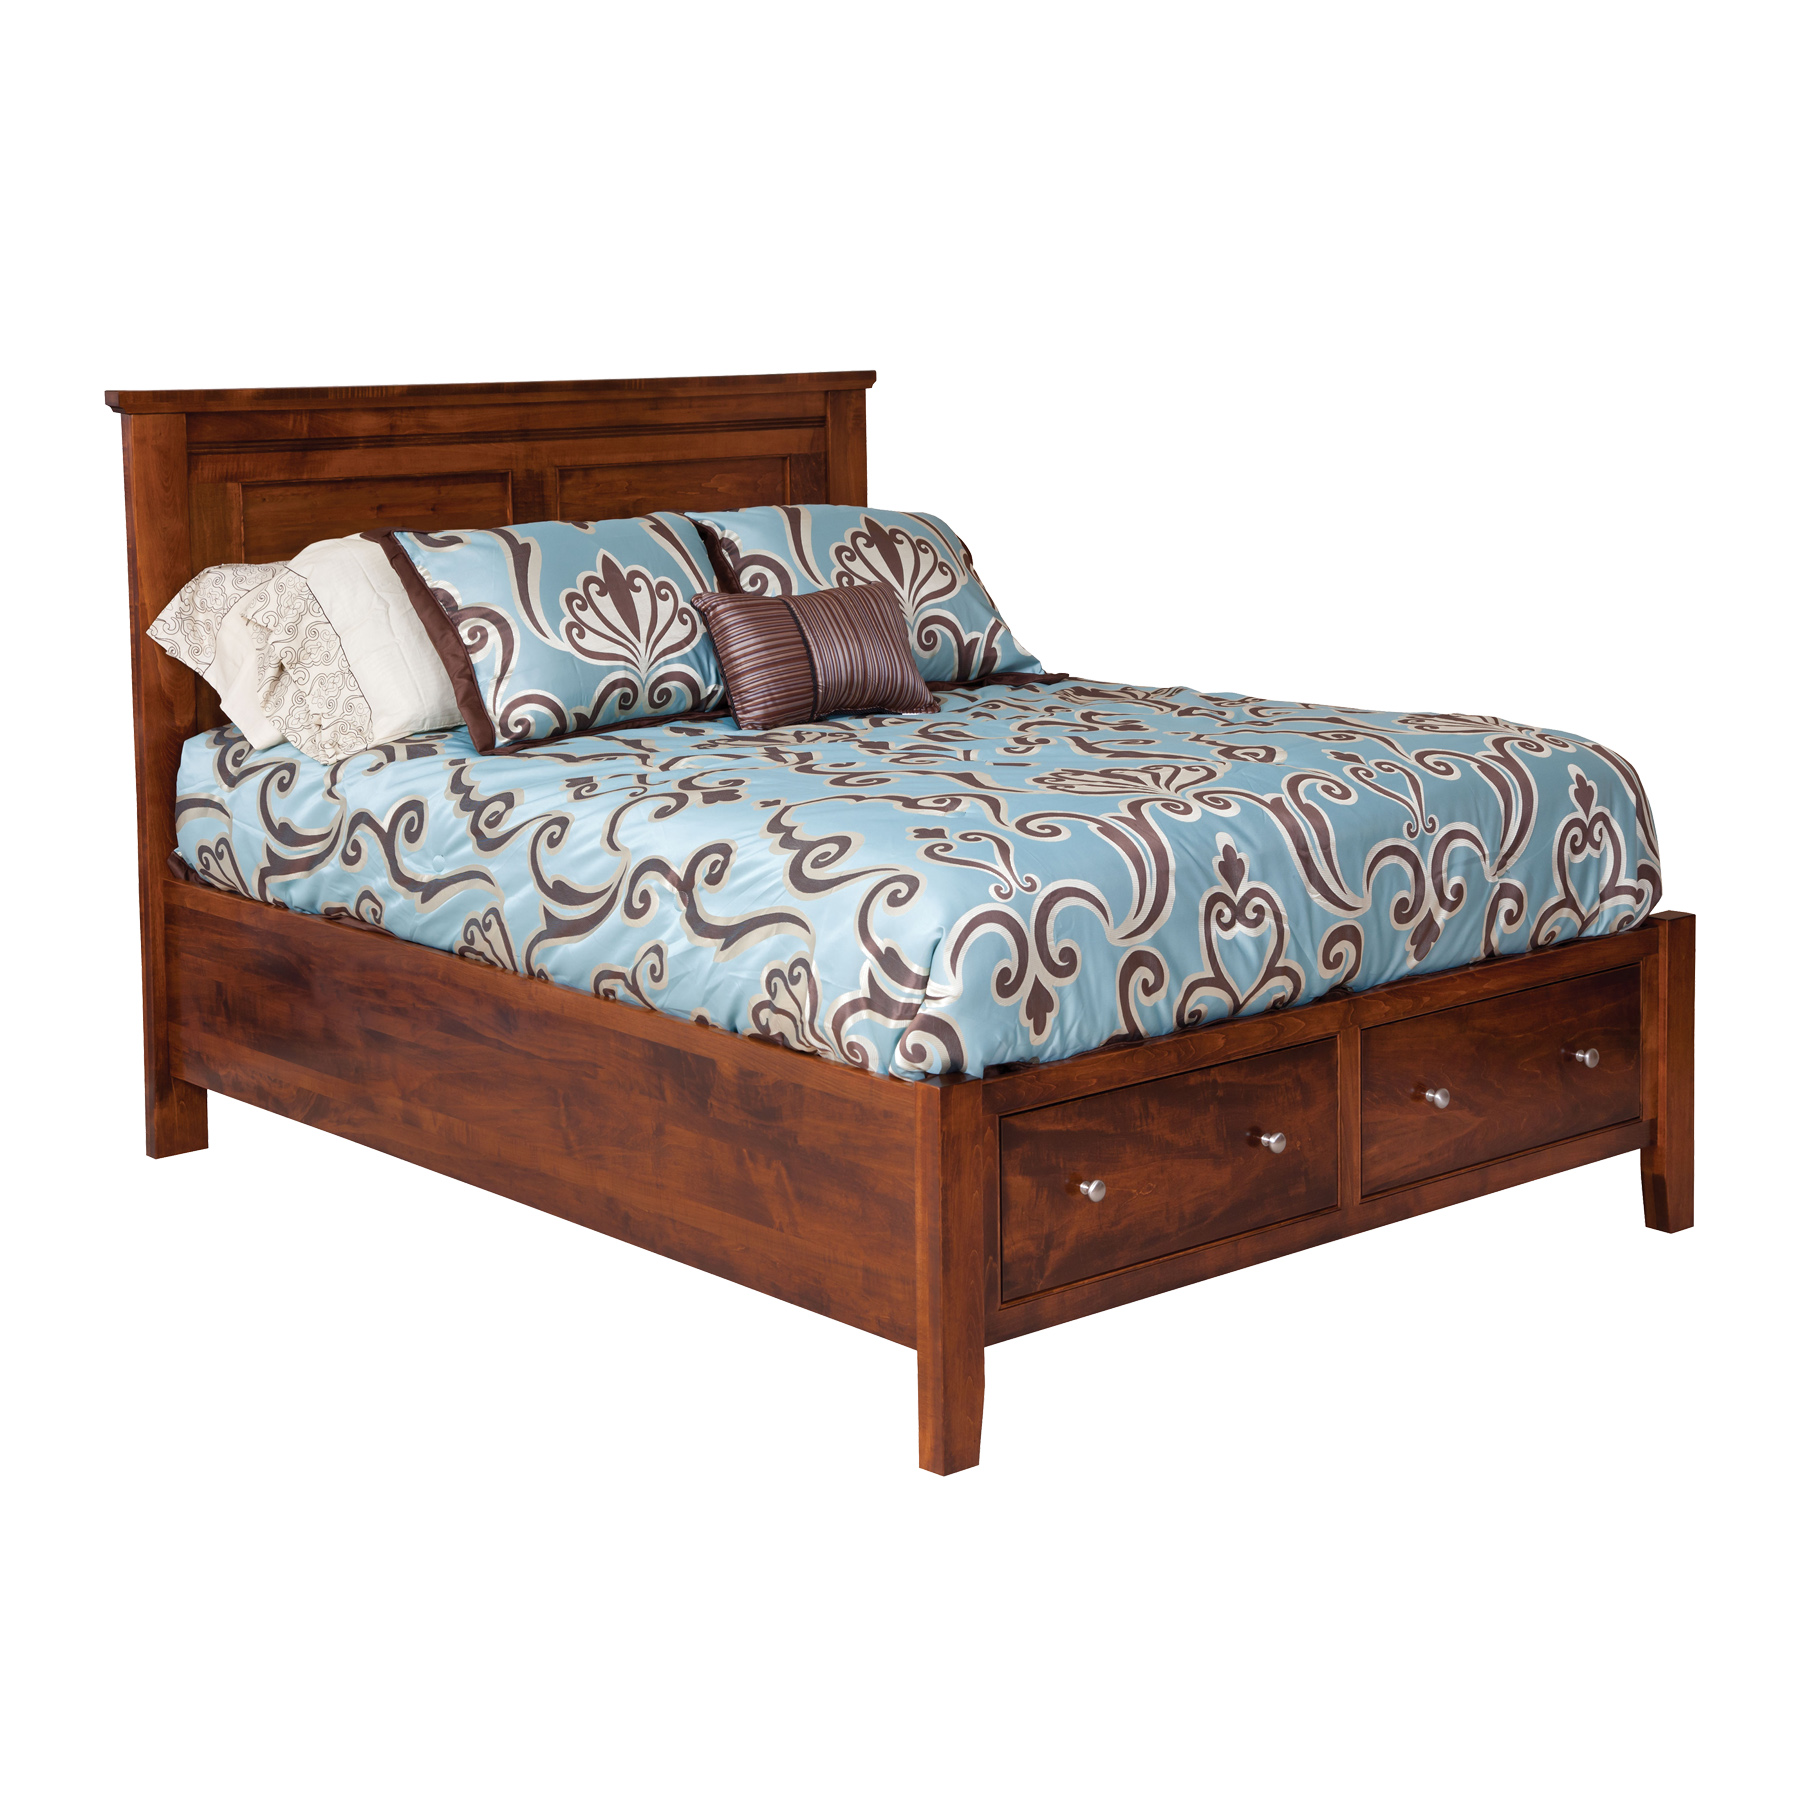 Hyland Park Panel Bed with Drawers